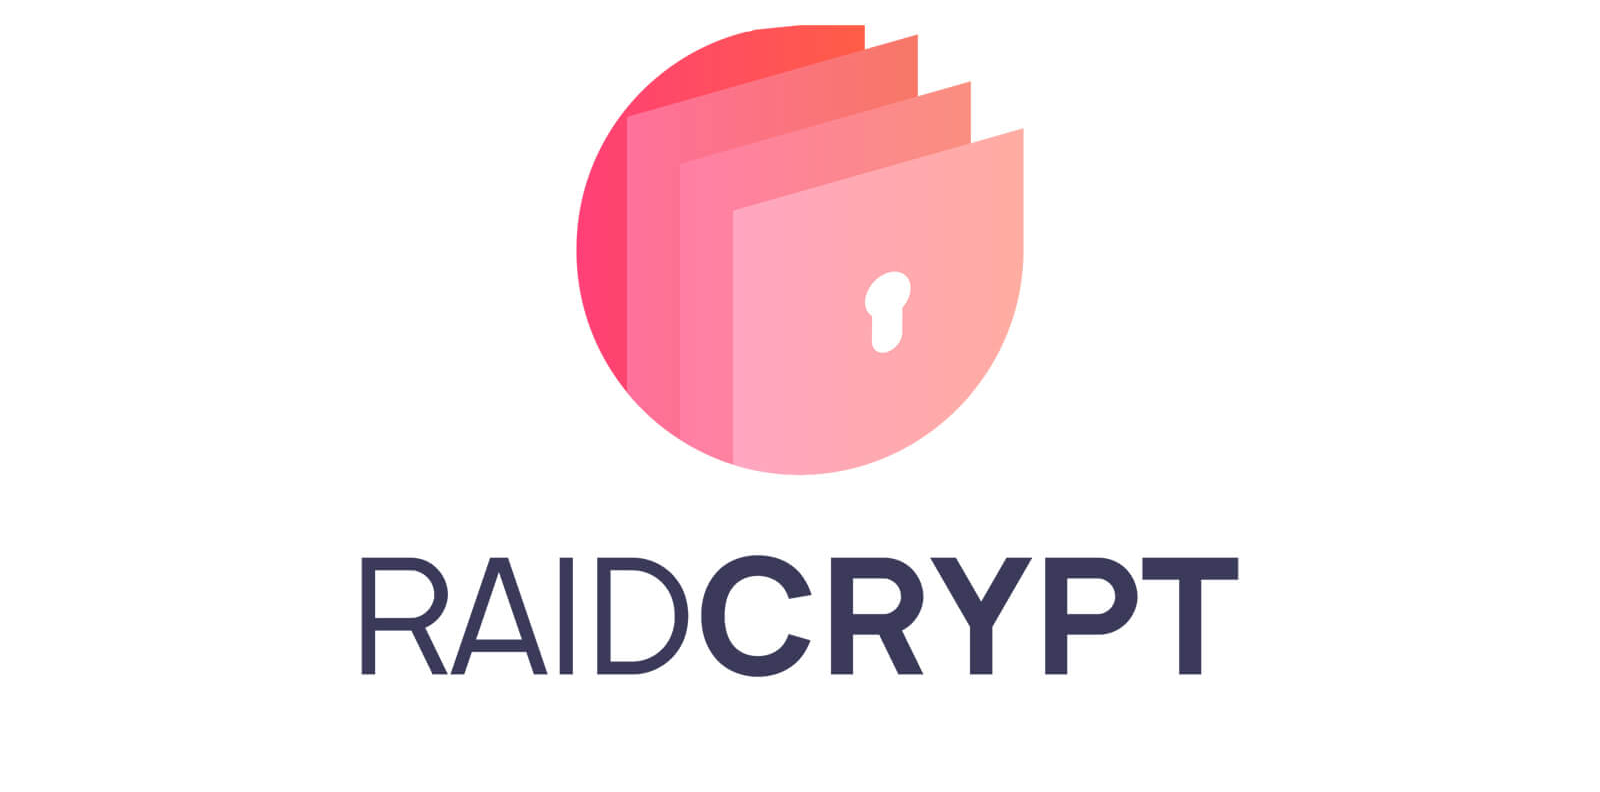 raidcrypt logo design